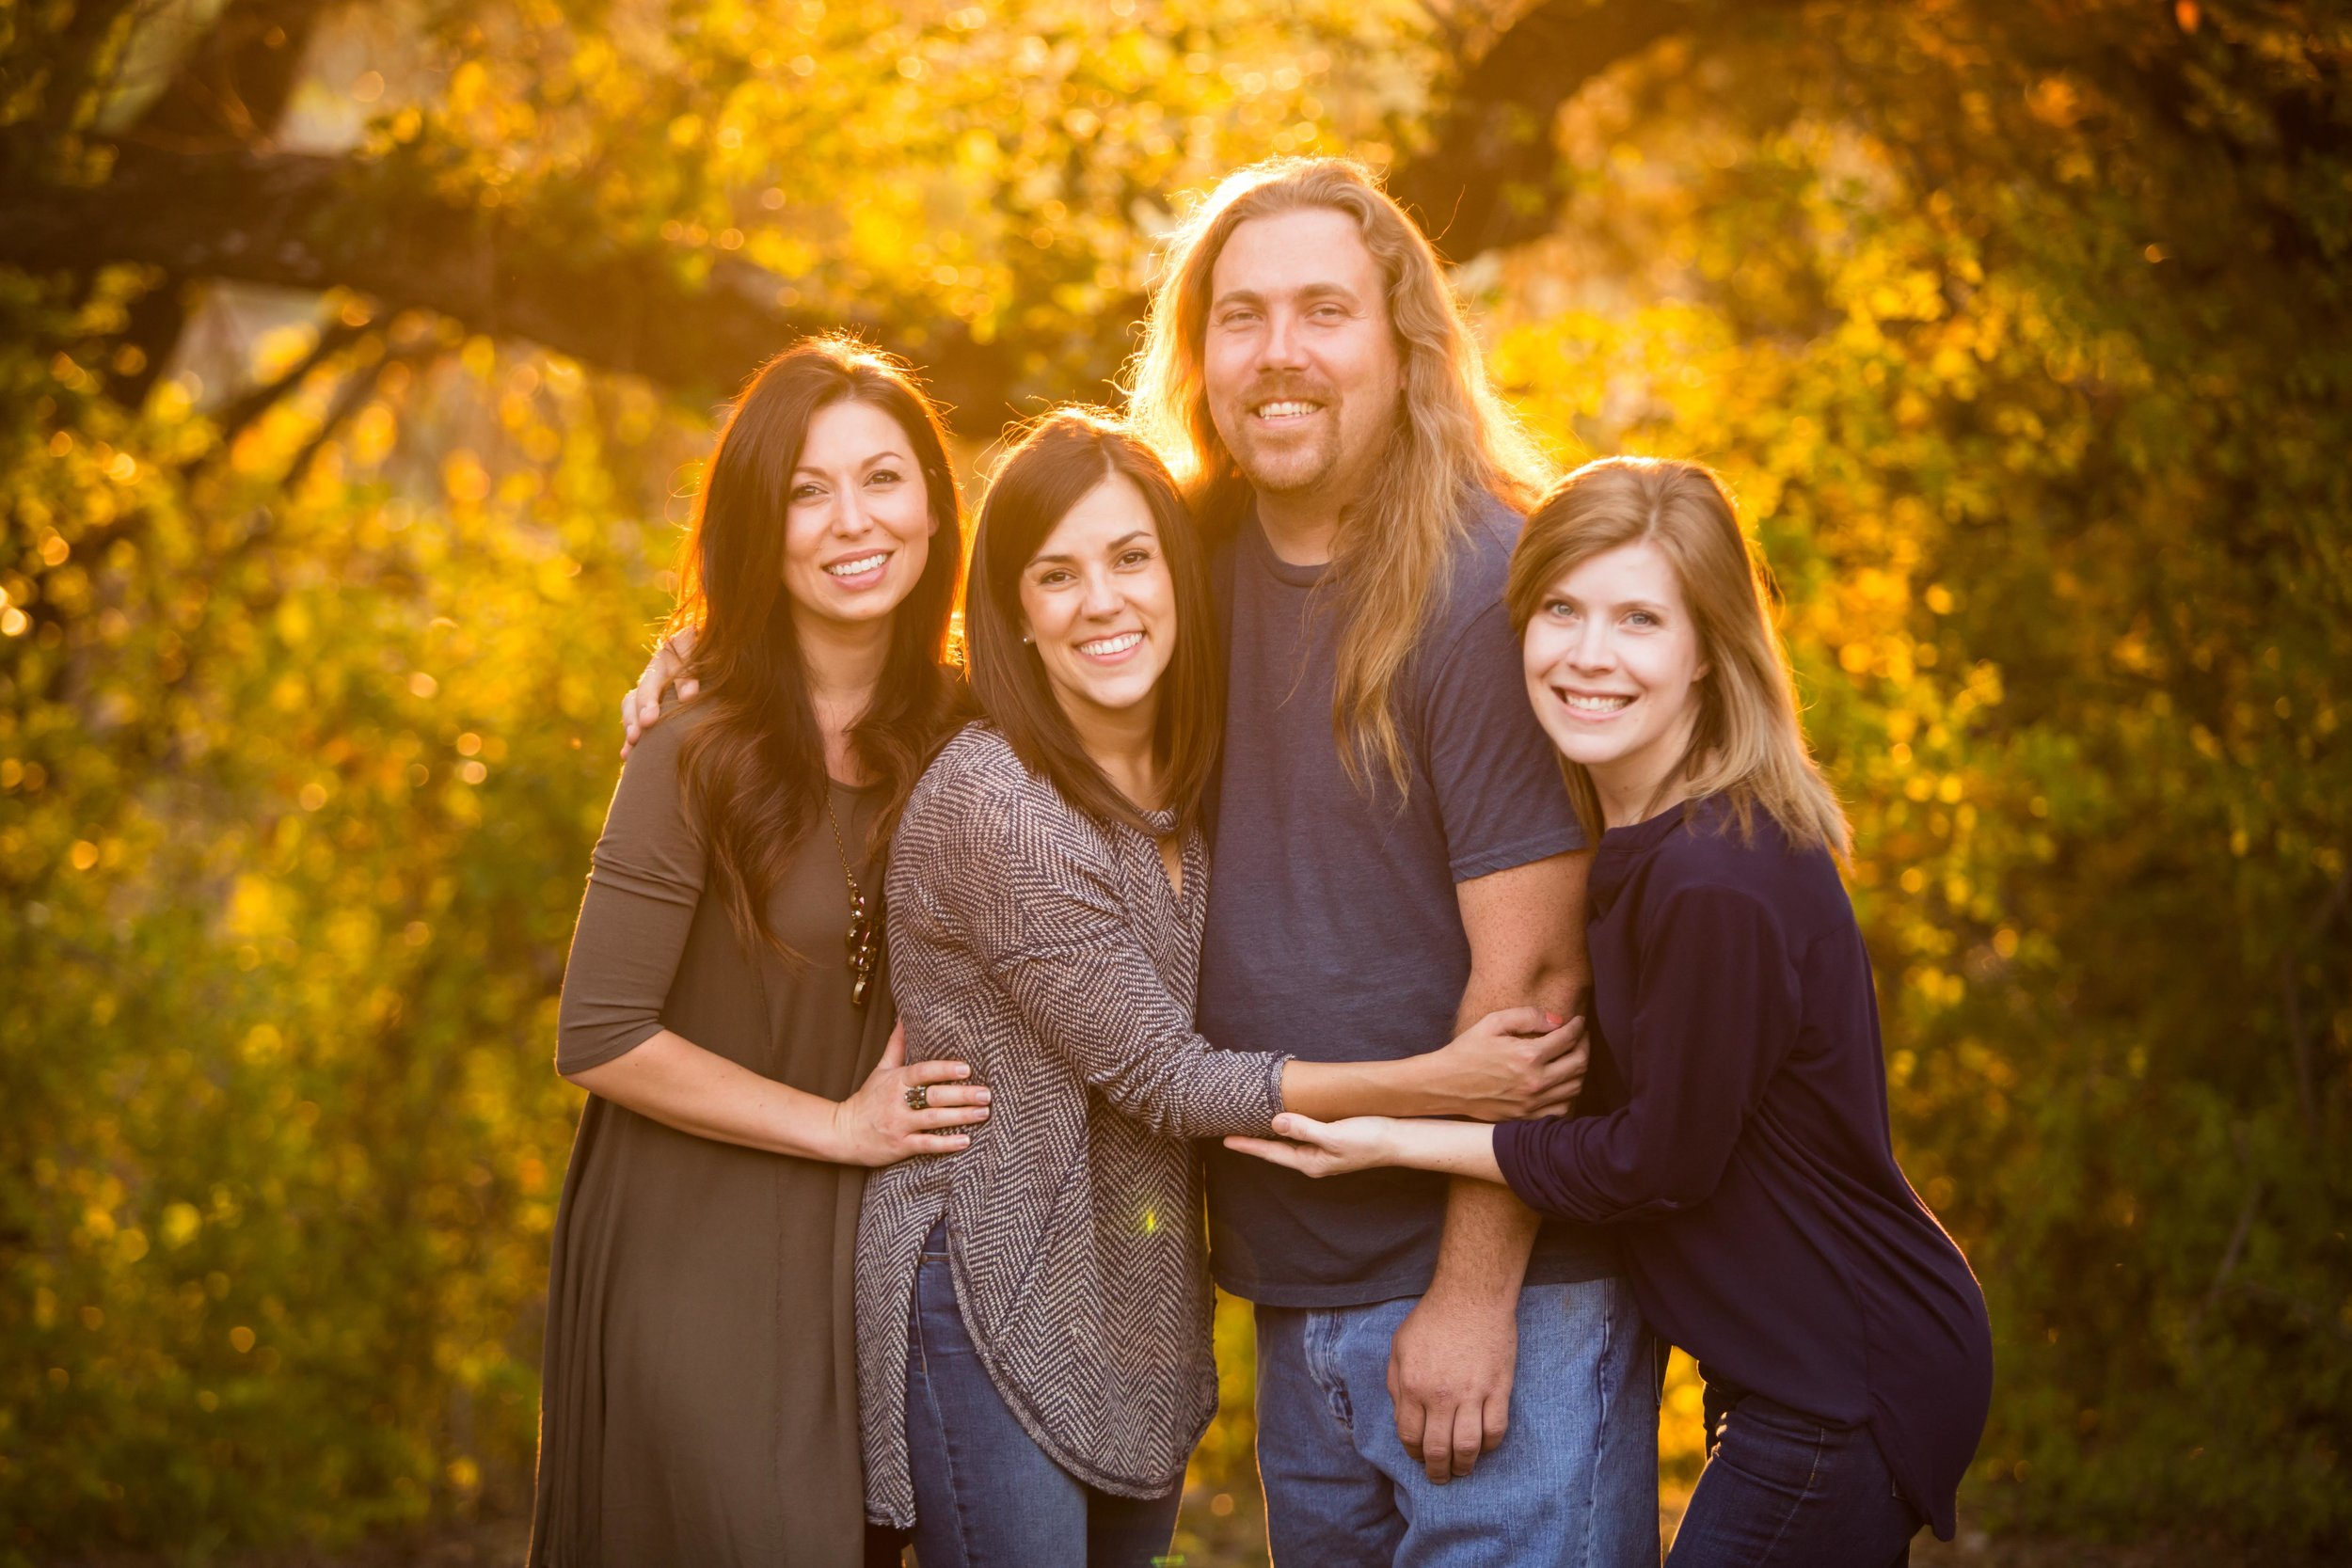 Marble_Falls_Stobaugh_Family_Photographer_Jenna_Petty_10.jpg